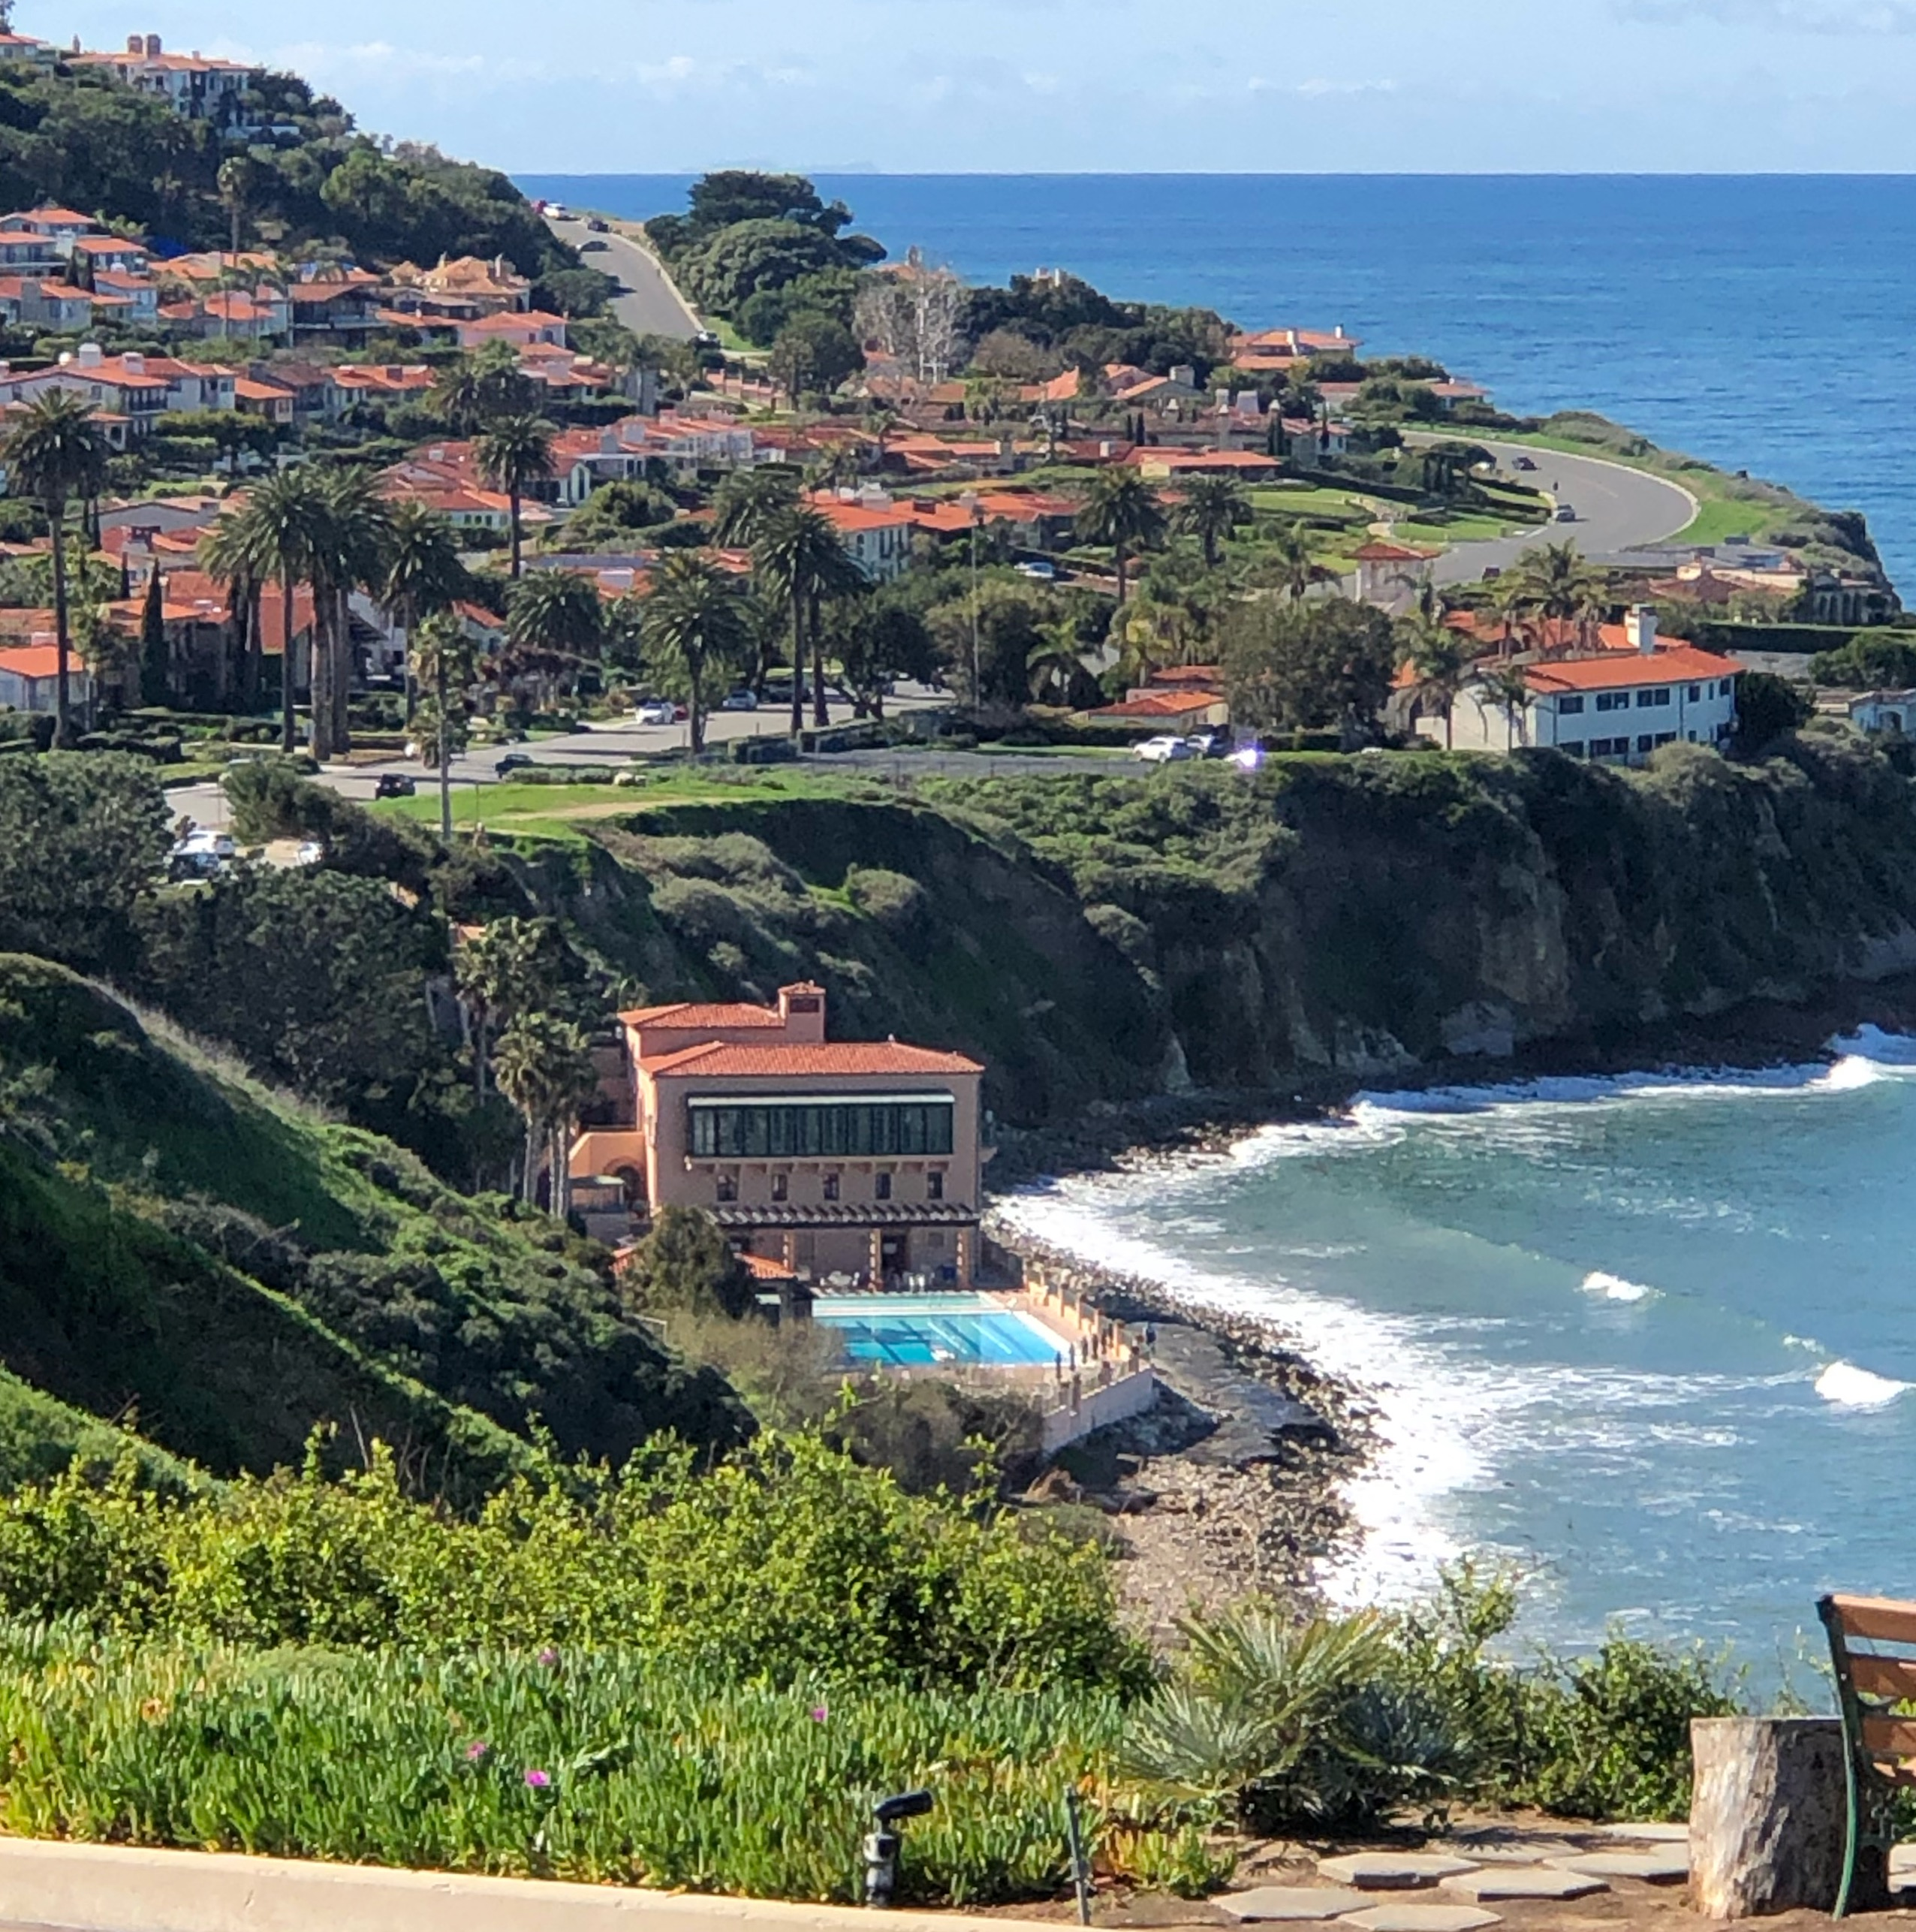 Palos Verdes Beach and Athletic Club